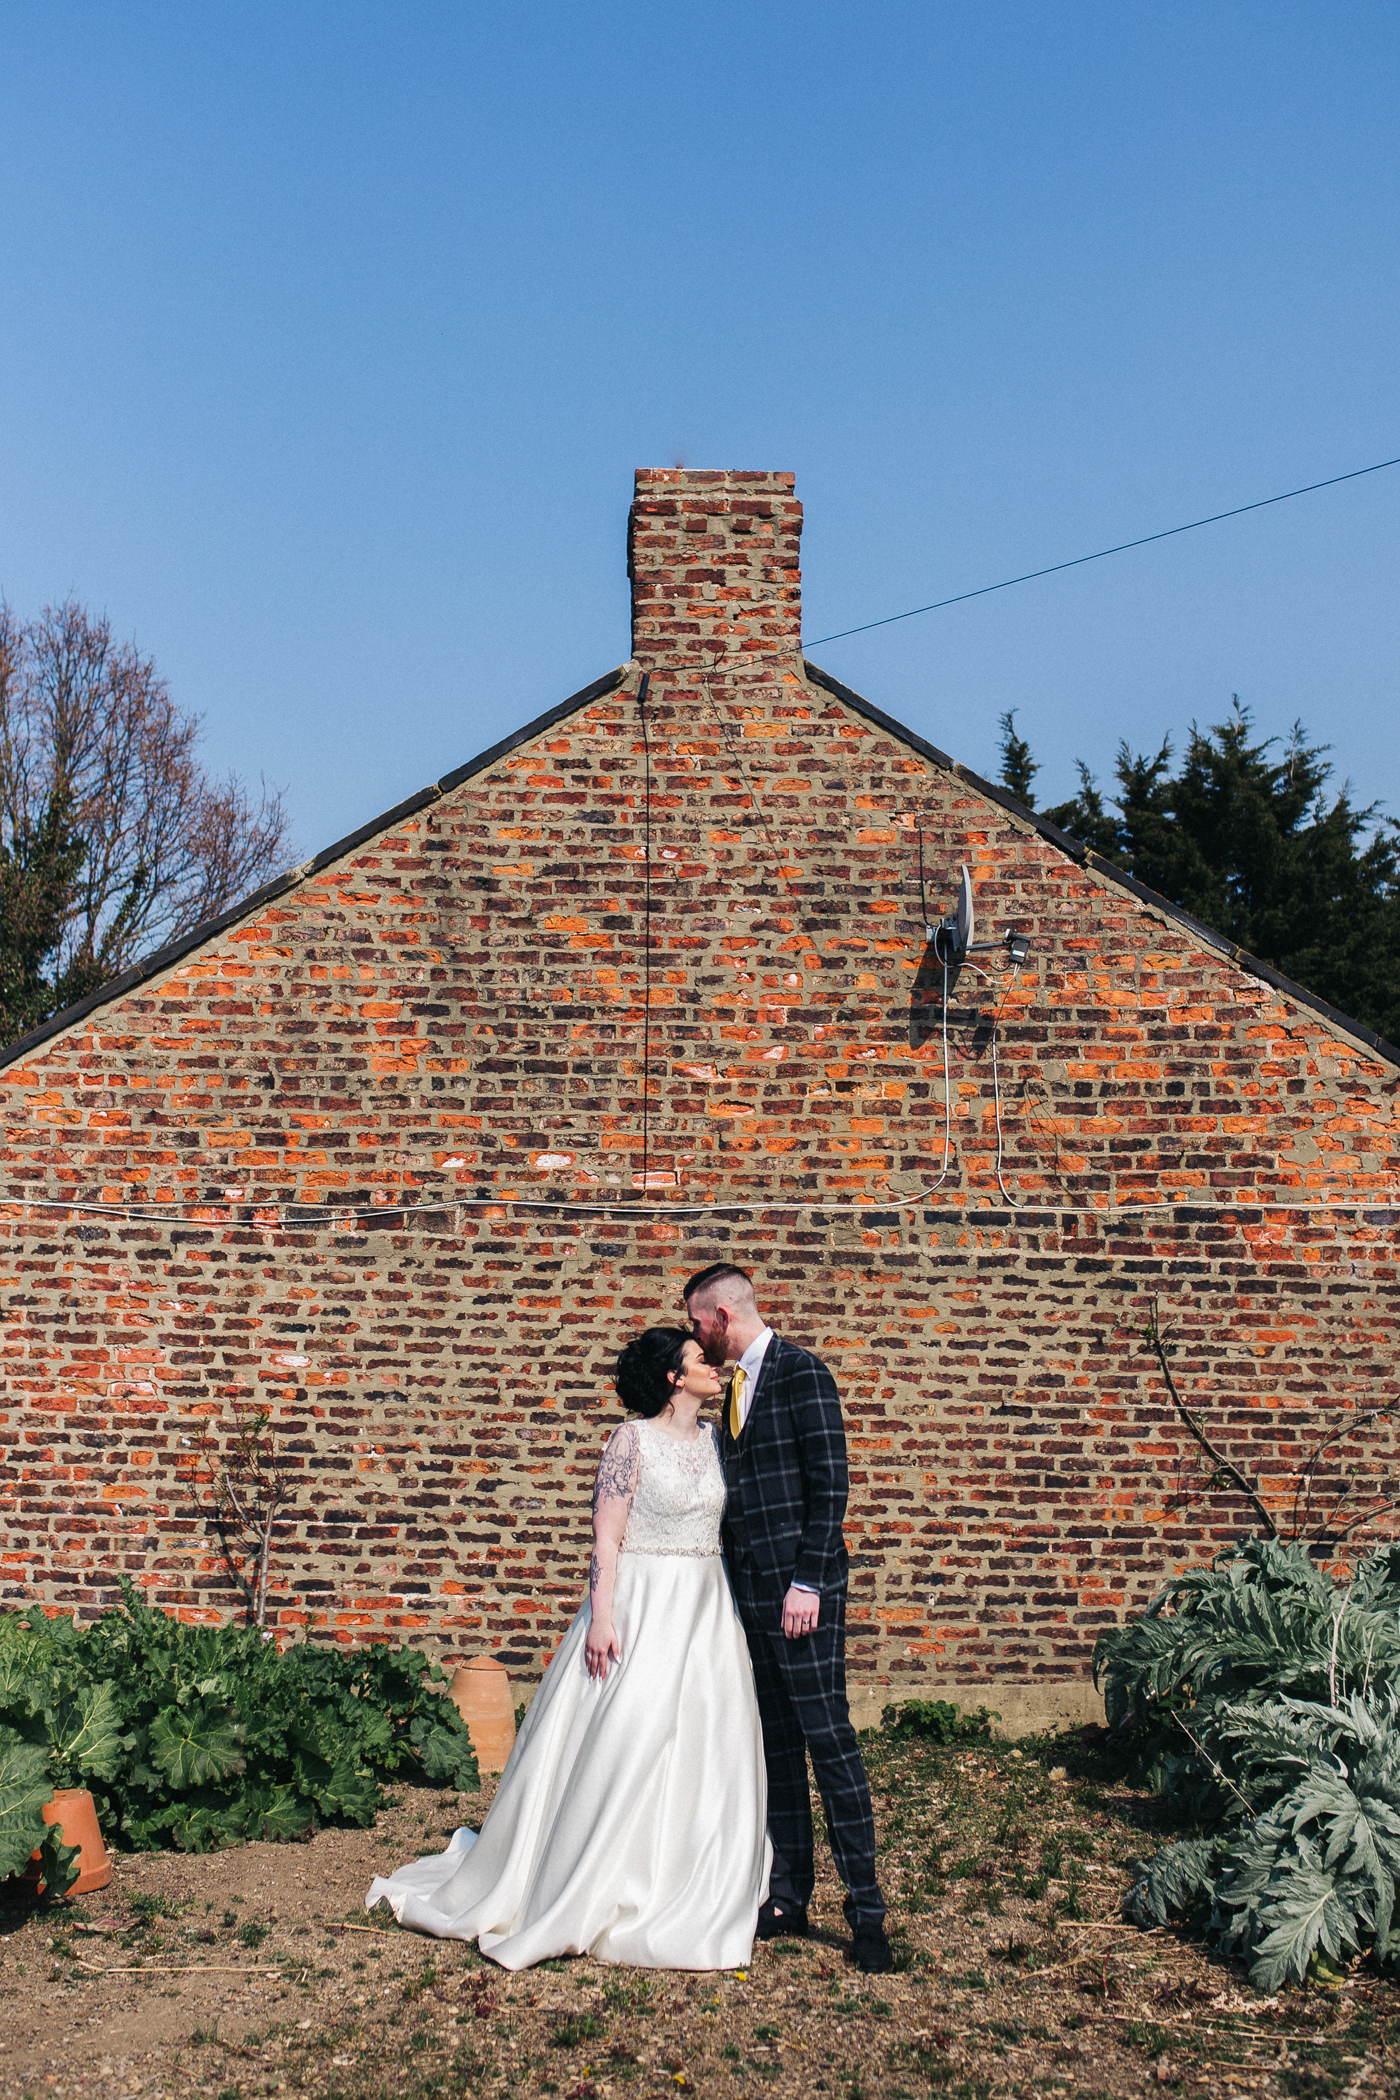 the bride and groom stand in allotments and look to each other. preston park museum wedding stockton teesside middlesbrough wedding photographer